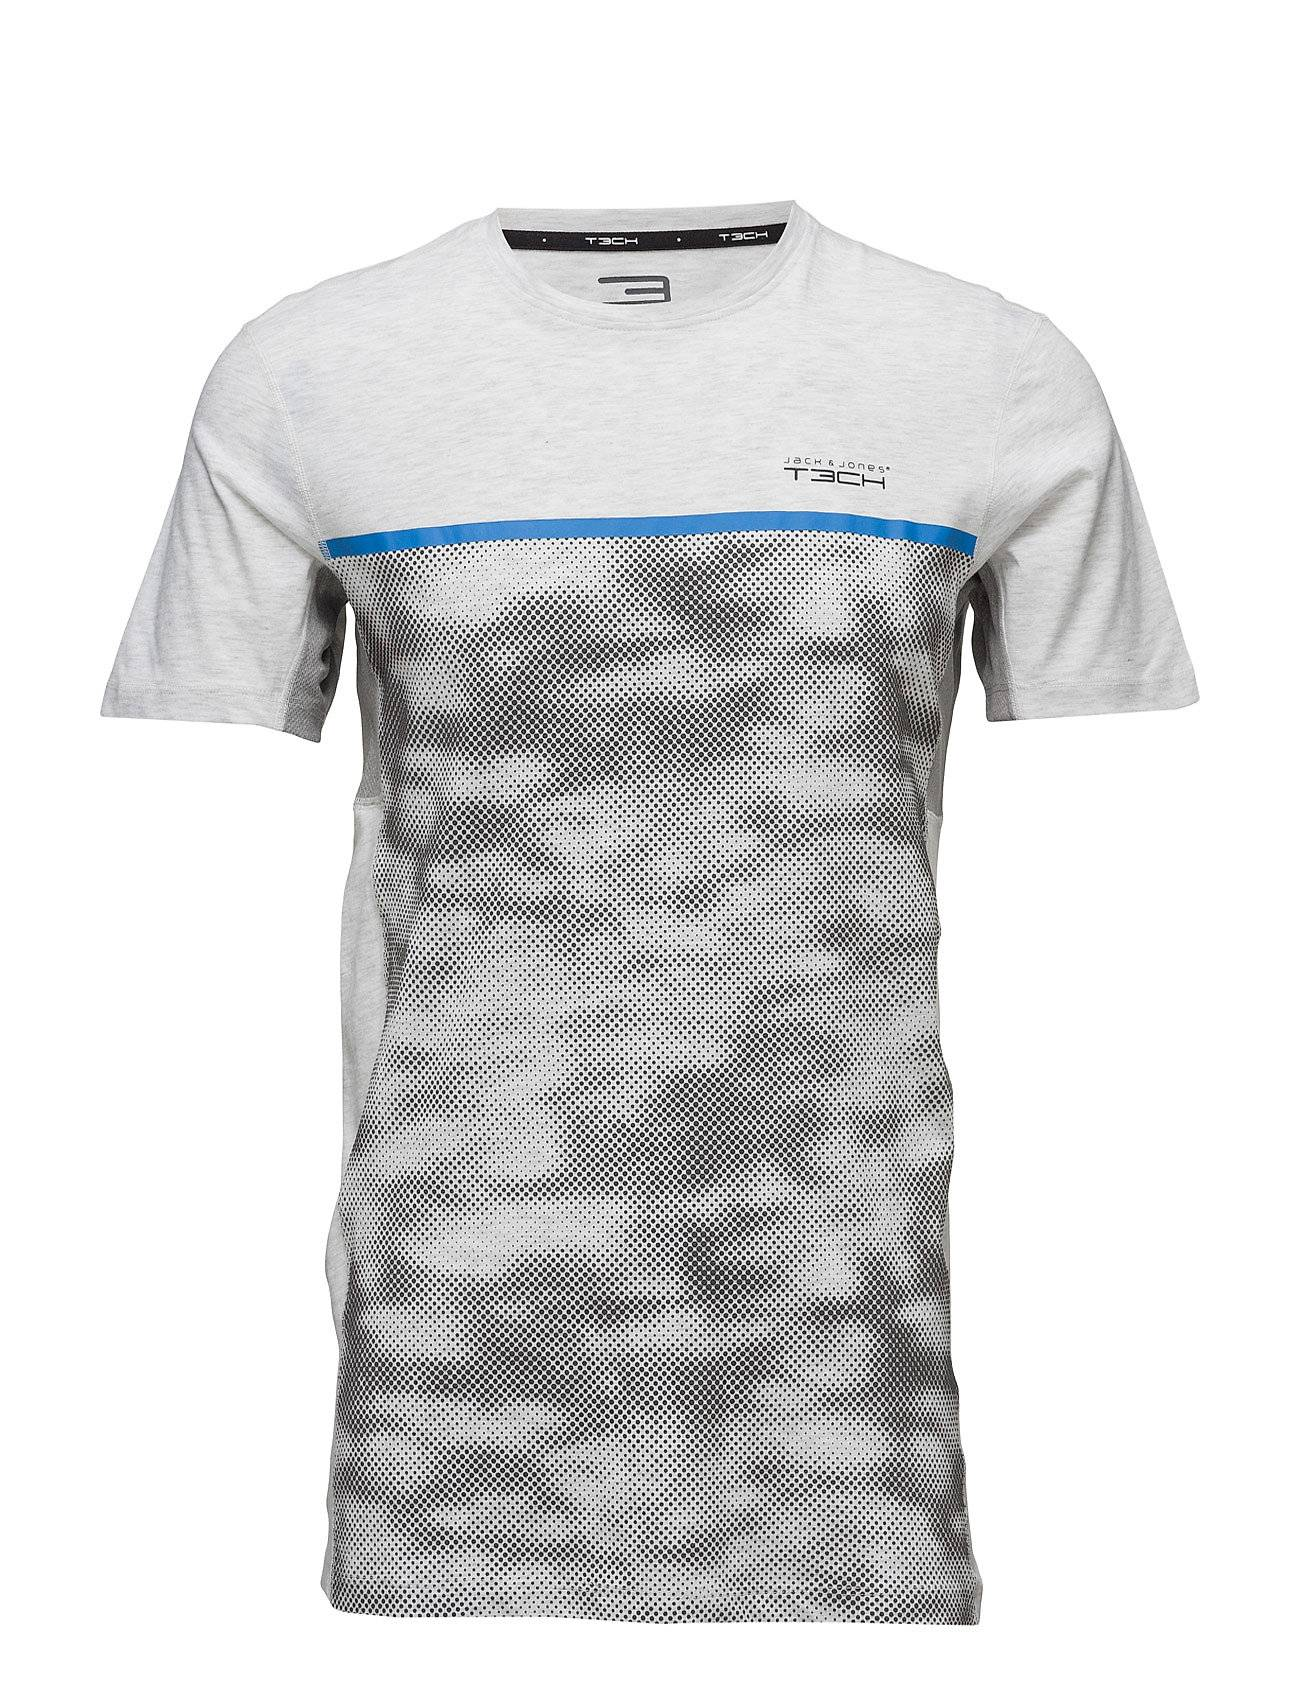 Jack & Jones Tech Jjtaop Tee Ss Crew Neck